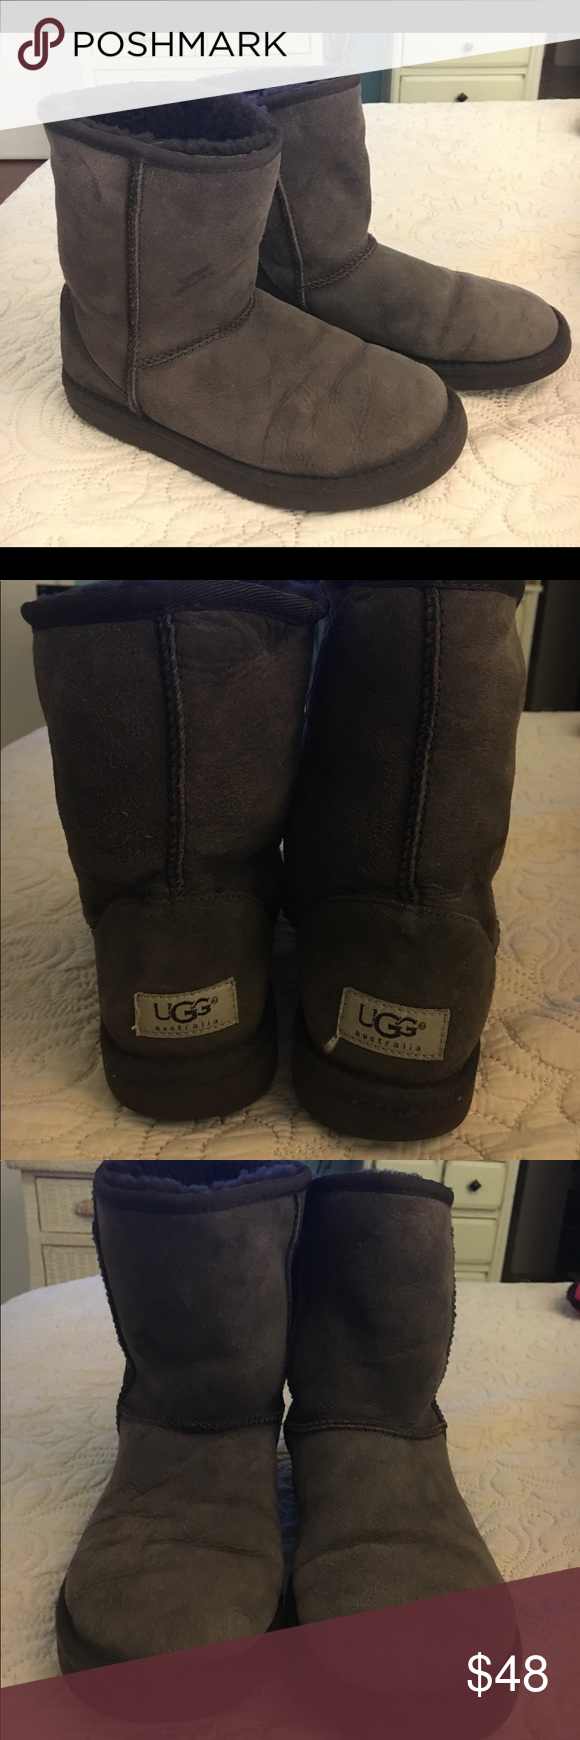 Ugg Australia Classic Short Boot Comfy Pair Of Ugg Boots Ugg Shoes Ankle Boots Booties Boots